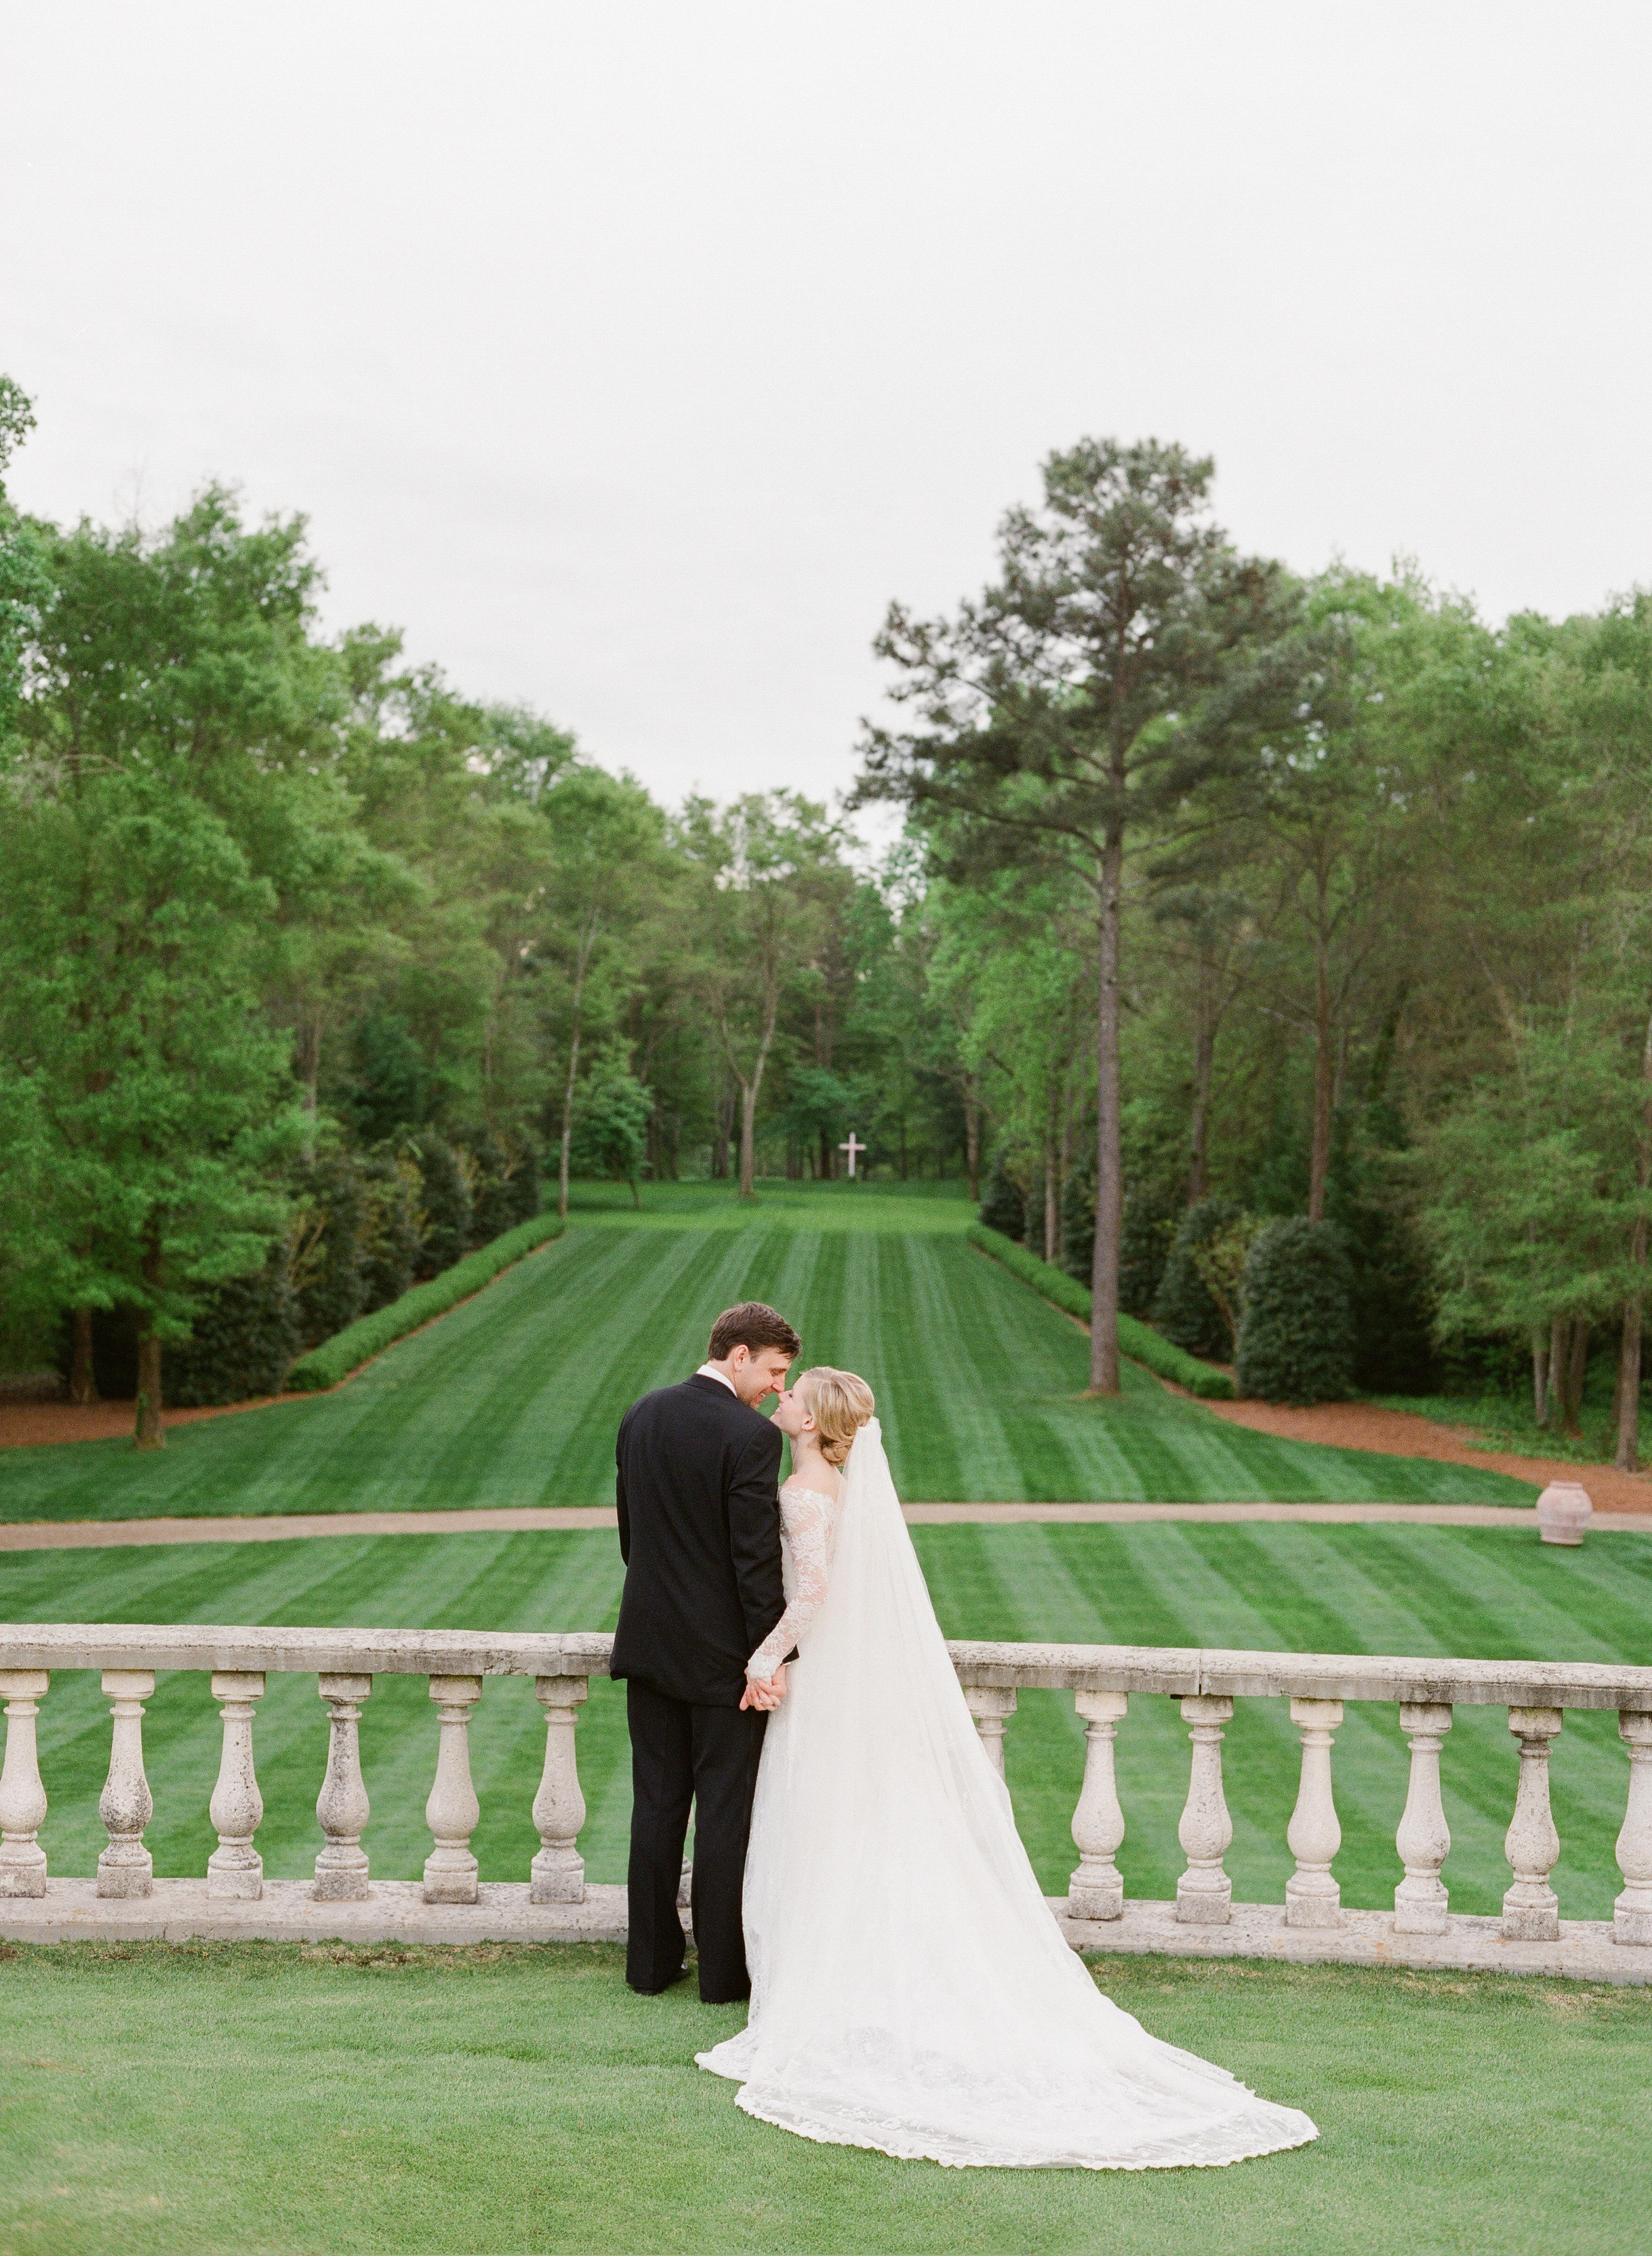 Brooke and David's lawn wedding